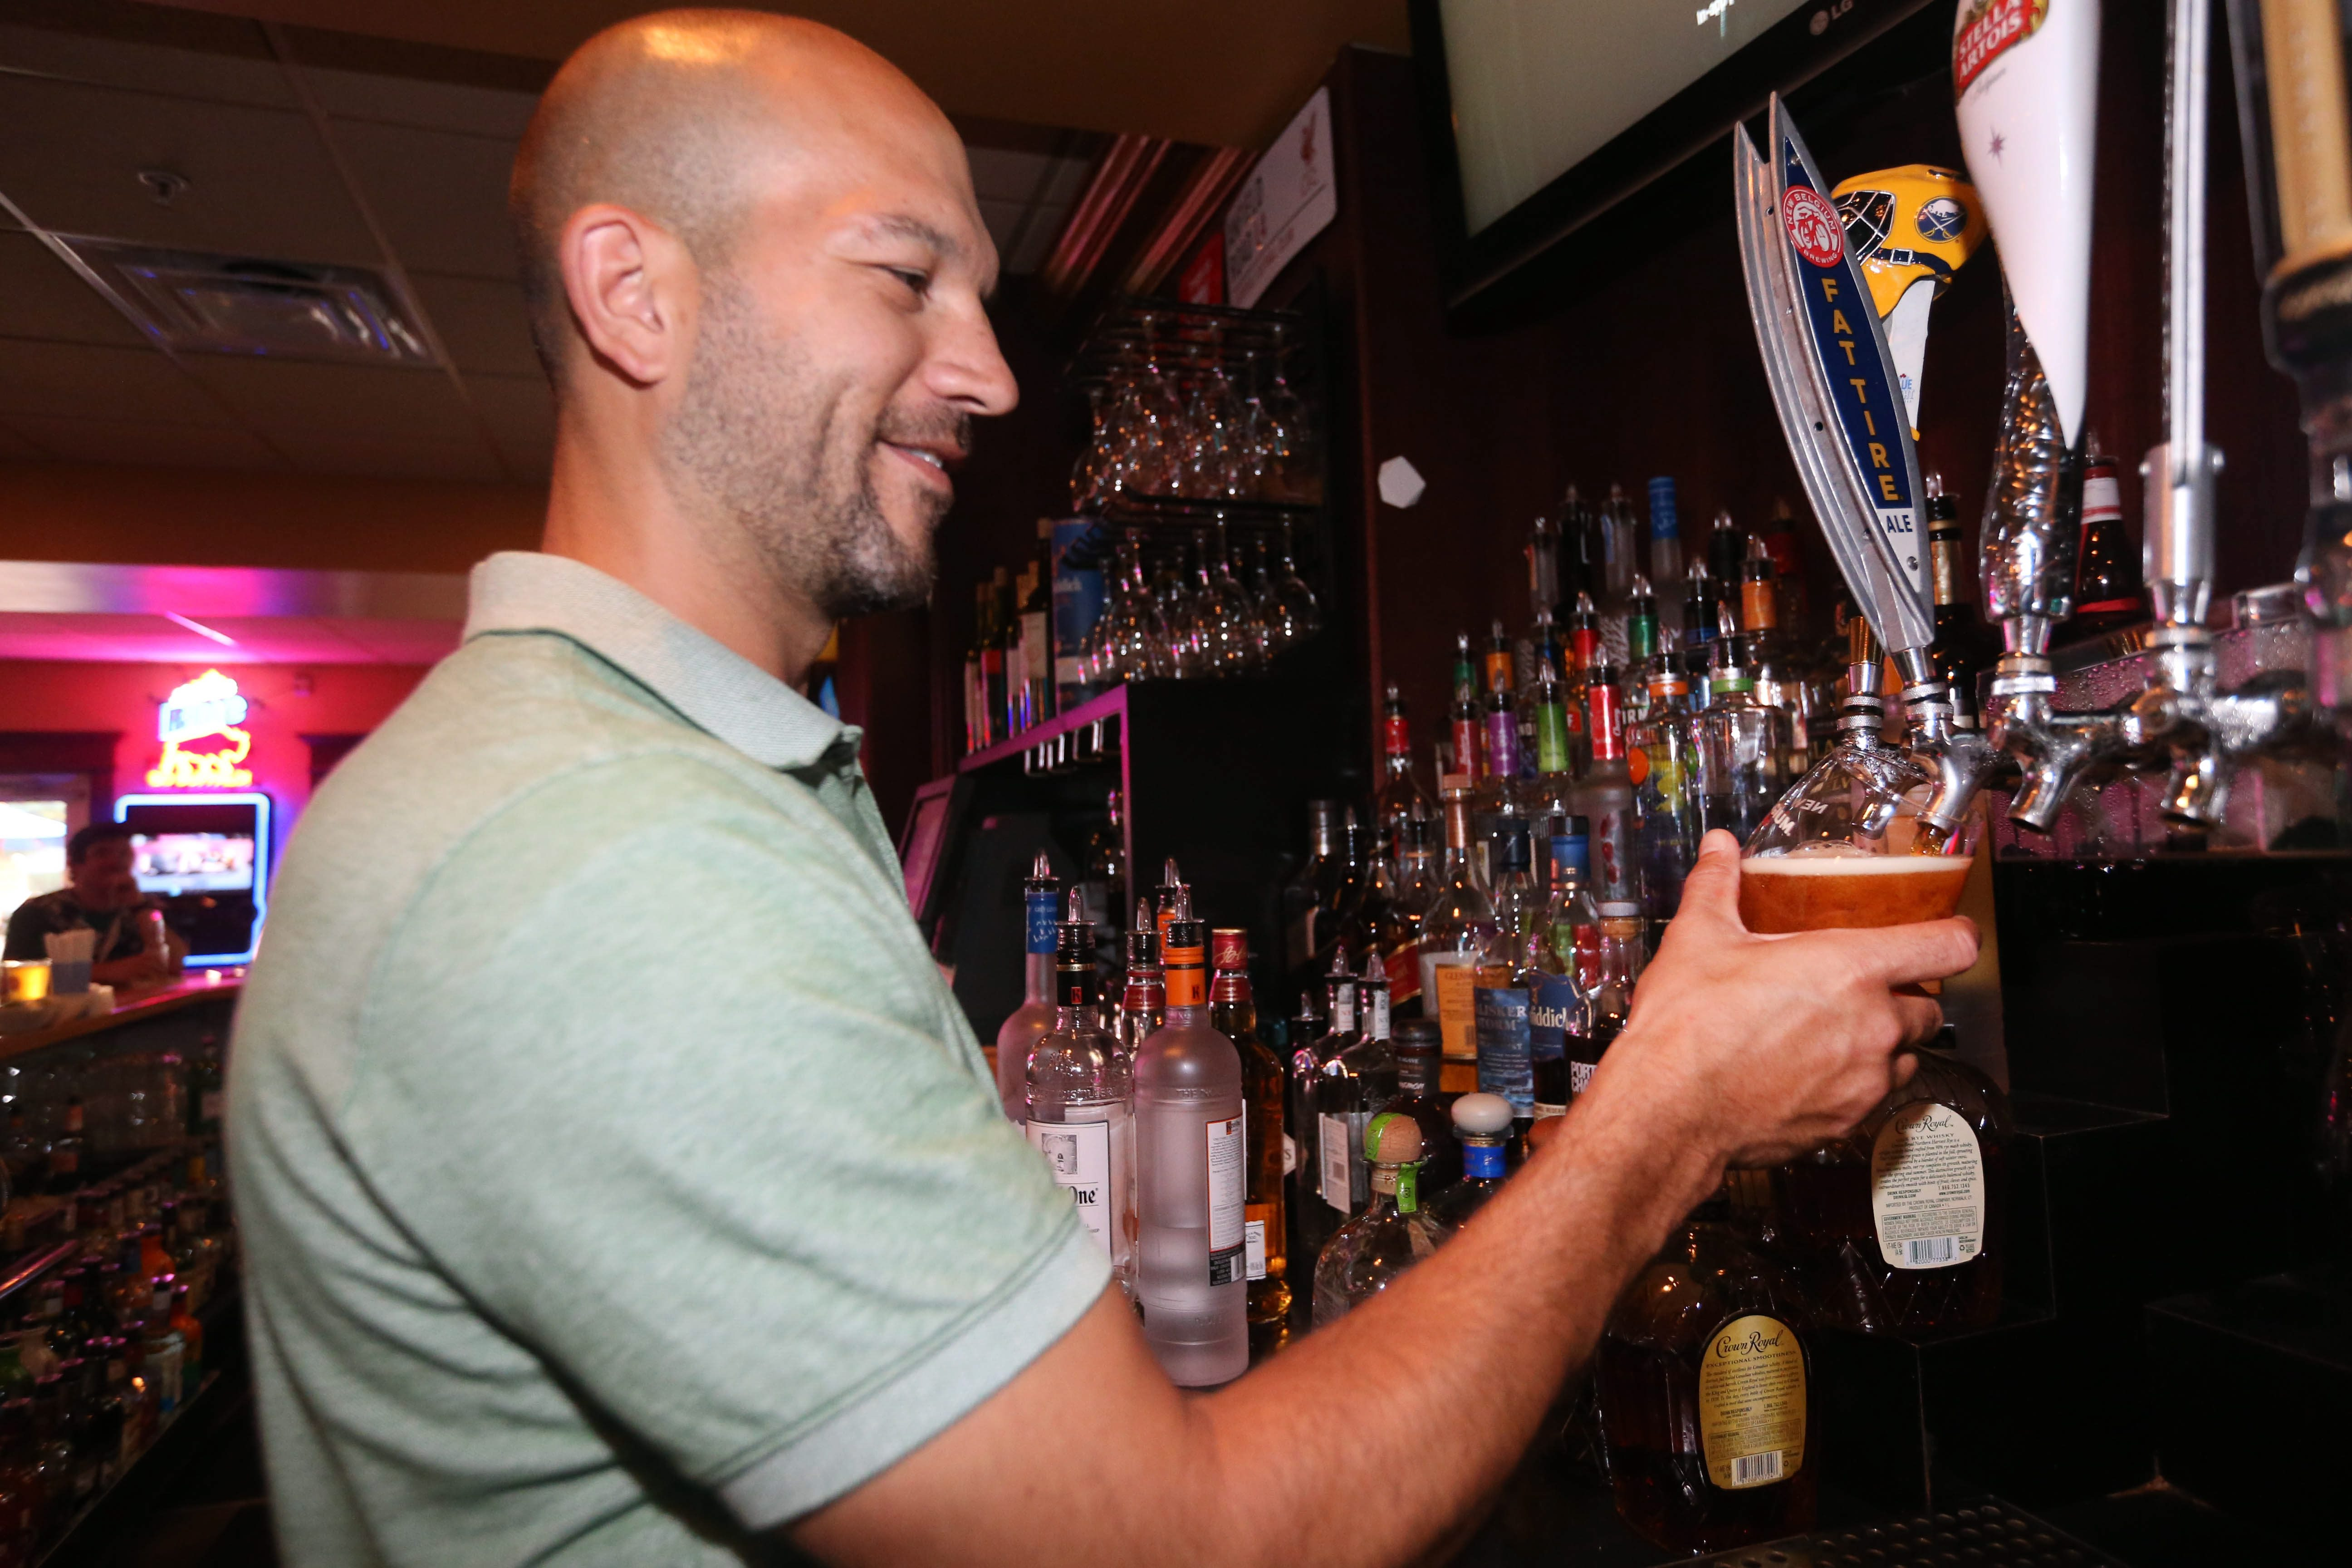 Grab a beer and enjoy the game at JP FItzgerald's in Hamburg. Bartender Timothy Hoak pours a New Belgium Fat Tire Ale. (Sharon Cantillon/Buffalo News file photo)